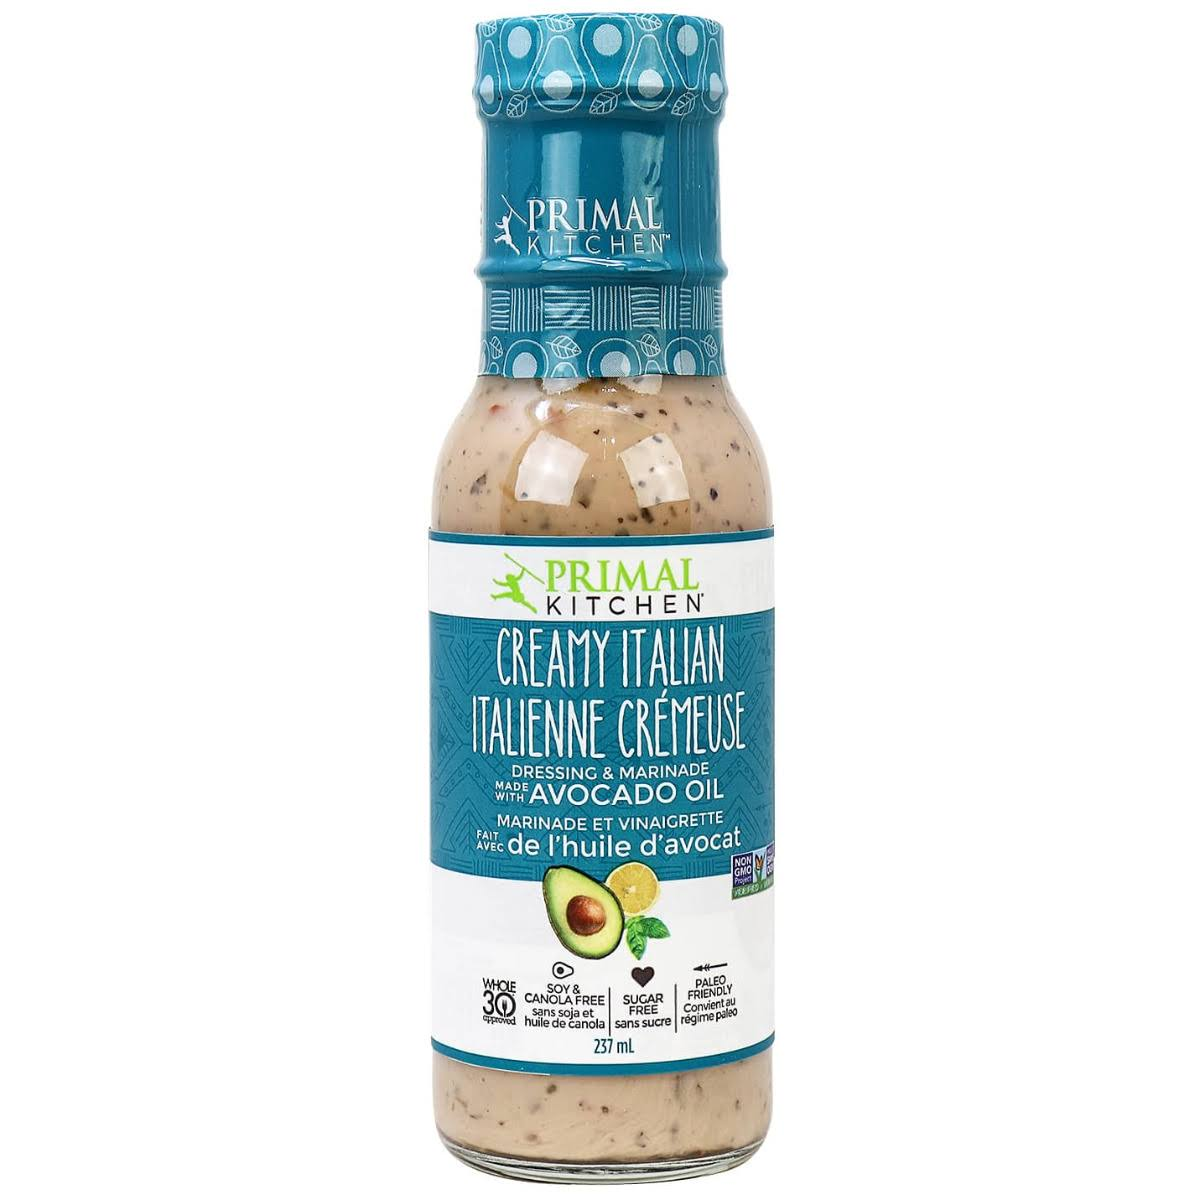 Primal Kitchen - Dreamy Italian Dressing and Marinade - Avocado, 8oz